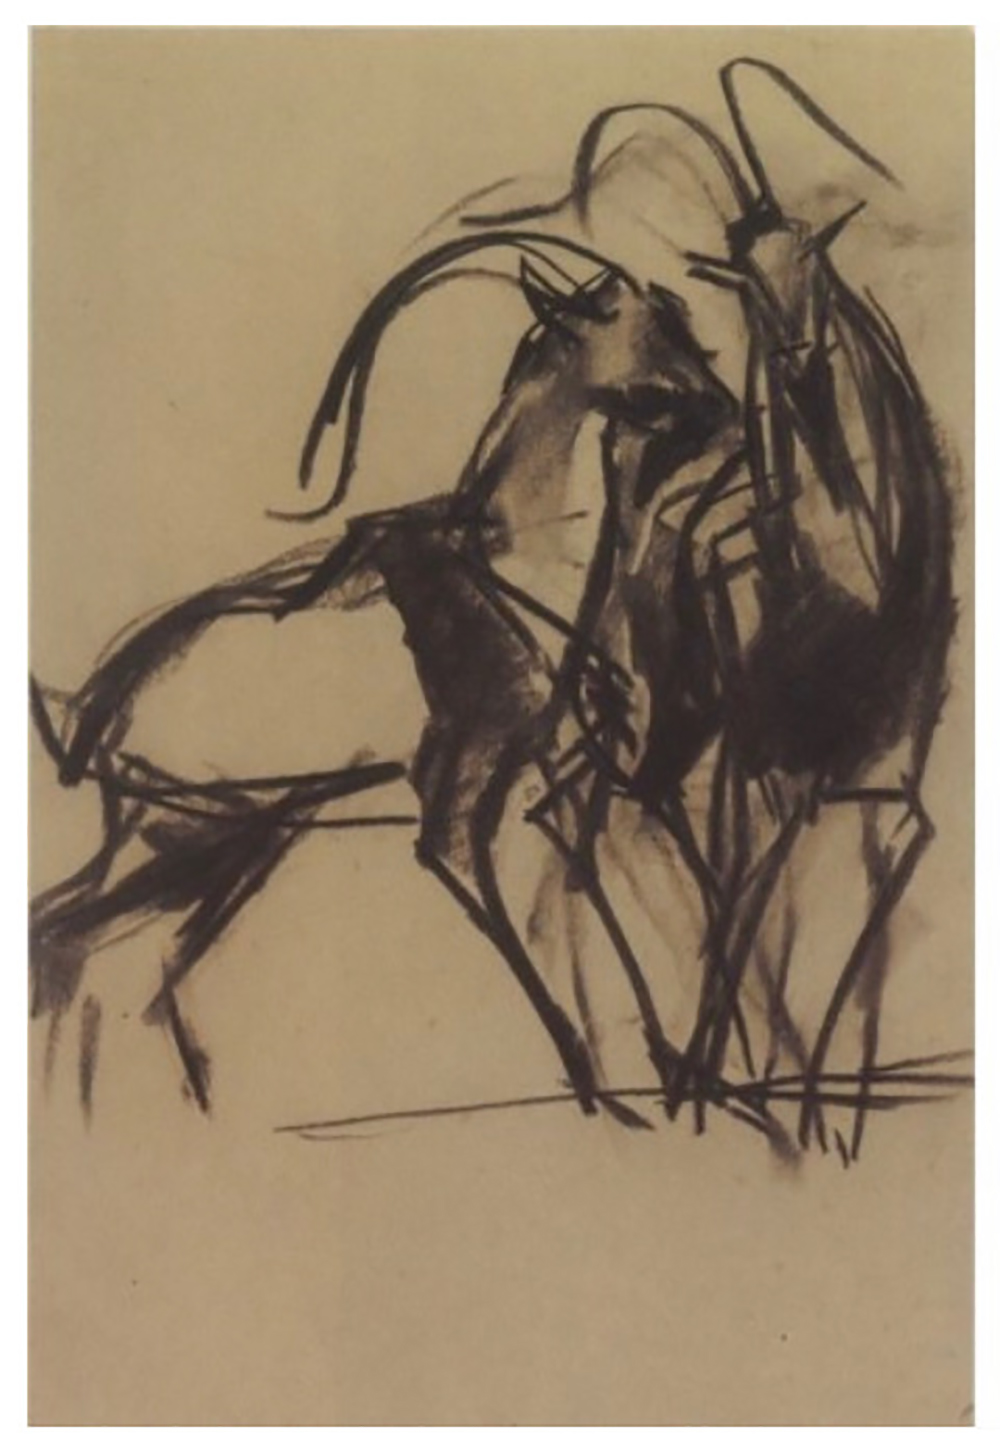 George Lappas (Greek, 1950-2016) (AR), 2 drawings in a frame, charcoal on paper - Image 2 of 3